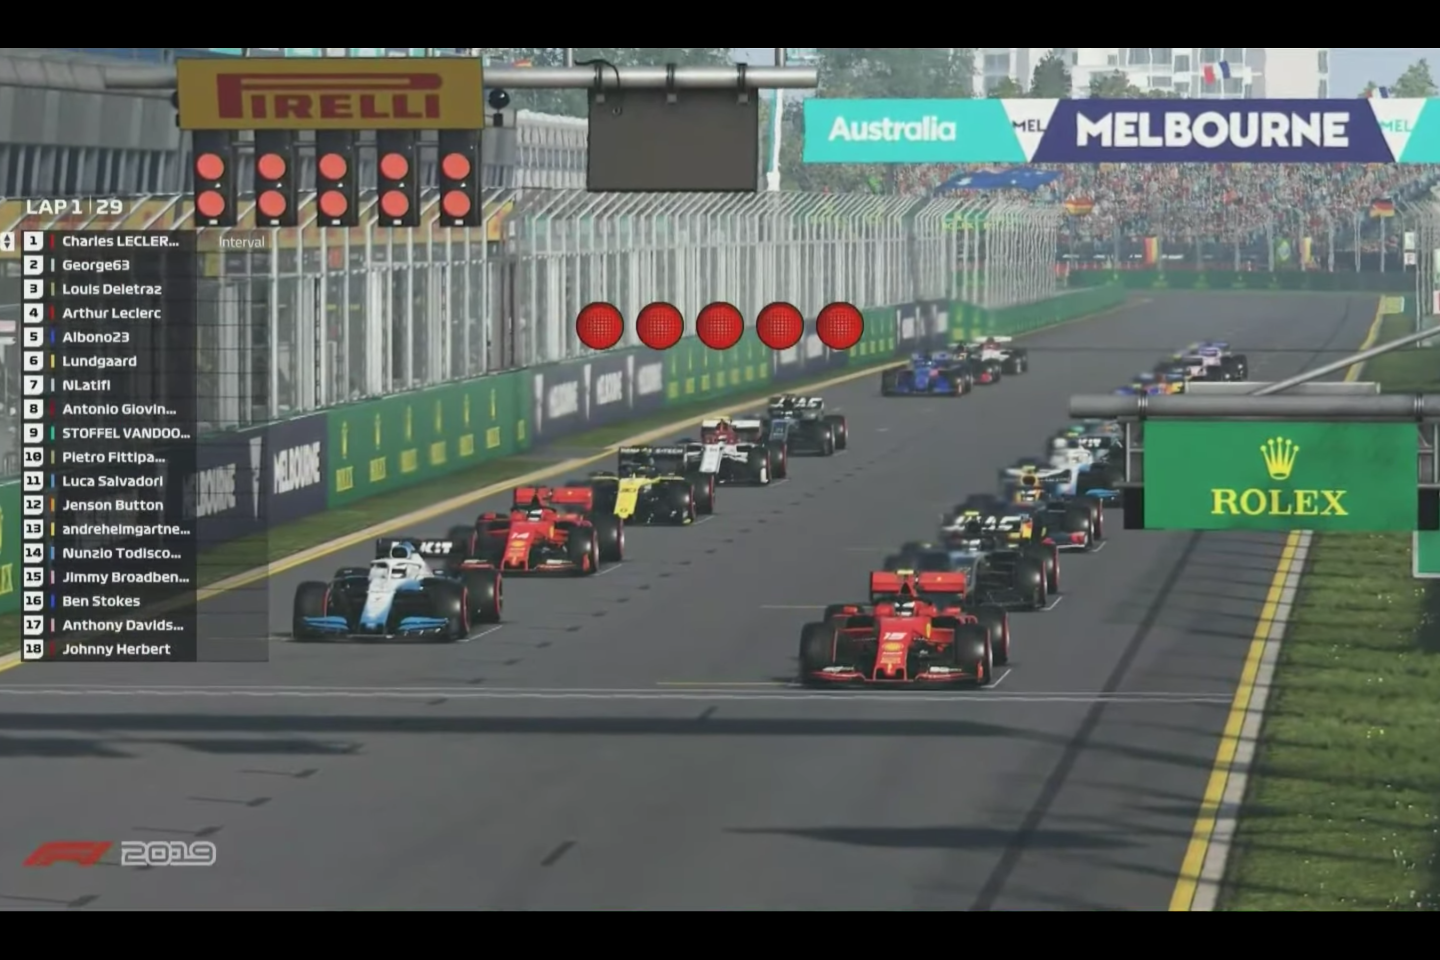 Virtually indistinguishable from the real deal on television, other than the names. That's Charles Leclerc's Ferrari on pole, George63 is George Russell in the Williams, Louis Delétraz is a Swiss Formula 2 driver, Arthur Leclerc is an ADAC F4 chamdriver, Charles' younger brother and a Ferrari Academy driver, Albono23 is Red Bull Racing's Alexander Albon, Lundgaard is Formula 2 driver Christian Lundgaard, NLatifi is Williams F1 driver Nicholas Latifi, Antonio Giovinazzi is an Alfa Romeo F1 driver and Stoffel Vandoorne is a Mercedes driver in Formula E. Other notables in the field are former world F1 champ Jenson Button, British cricketer Ben Stokes and former F1 star and commentator Johnny Herbert